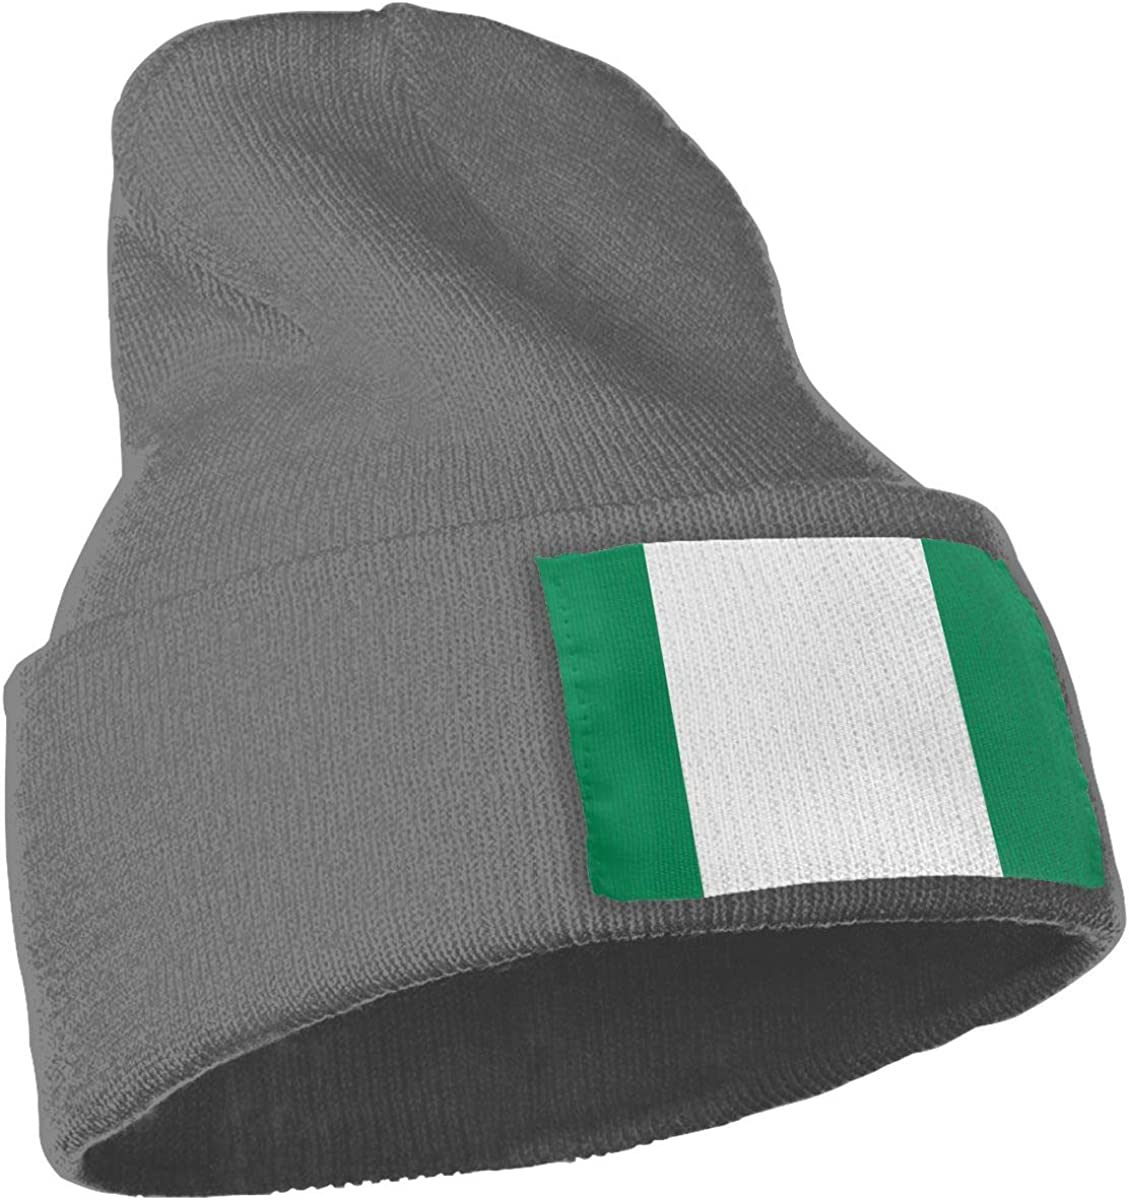 TAOMAP89 Unisex American Nigerian Flag Skull Caps Men /& Women Winter Warm Stretchy Knit Beanie Hats